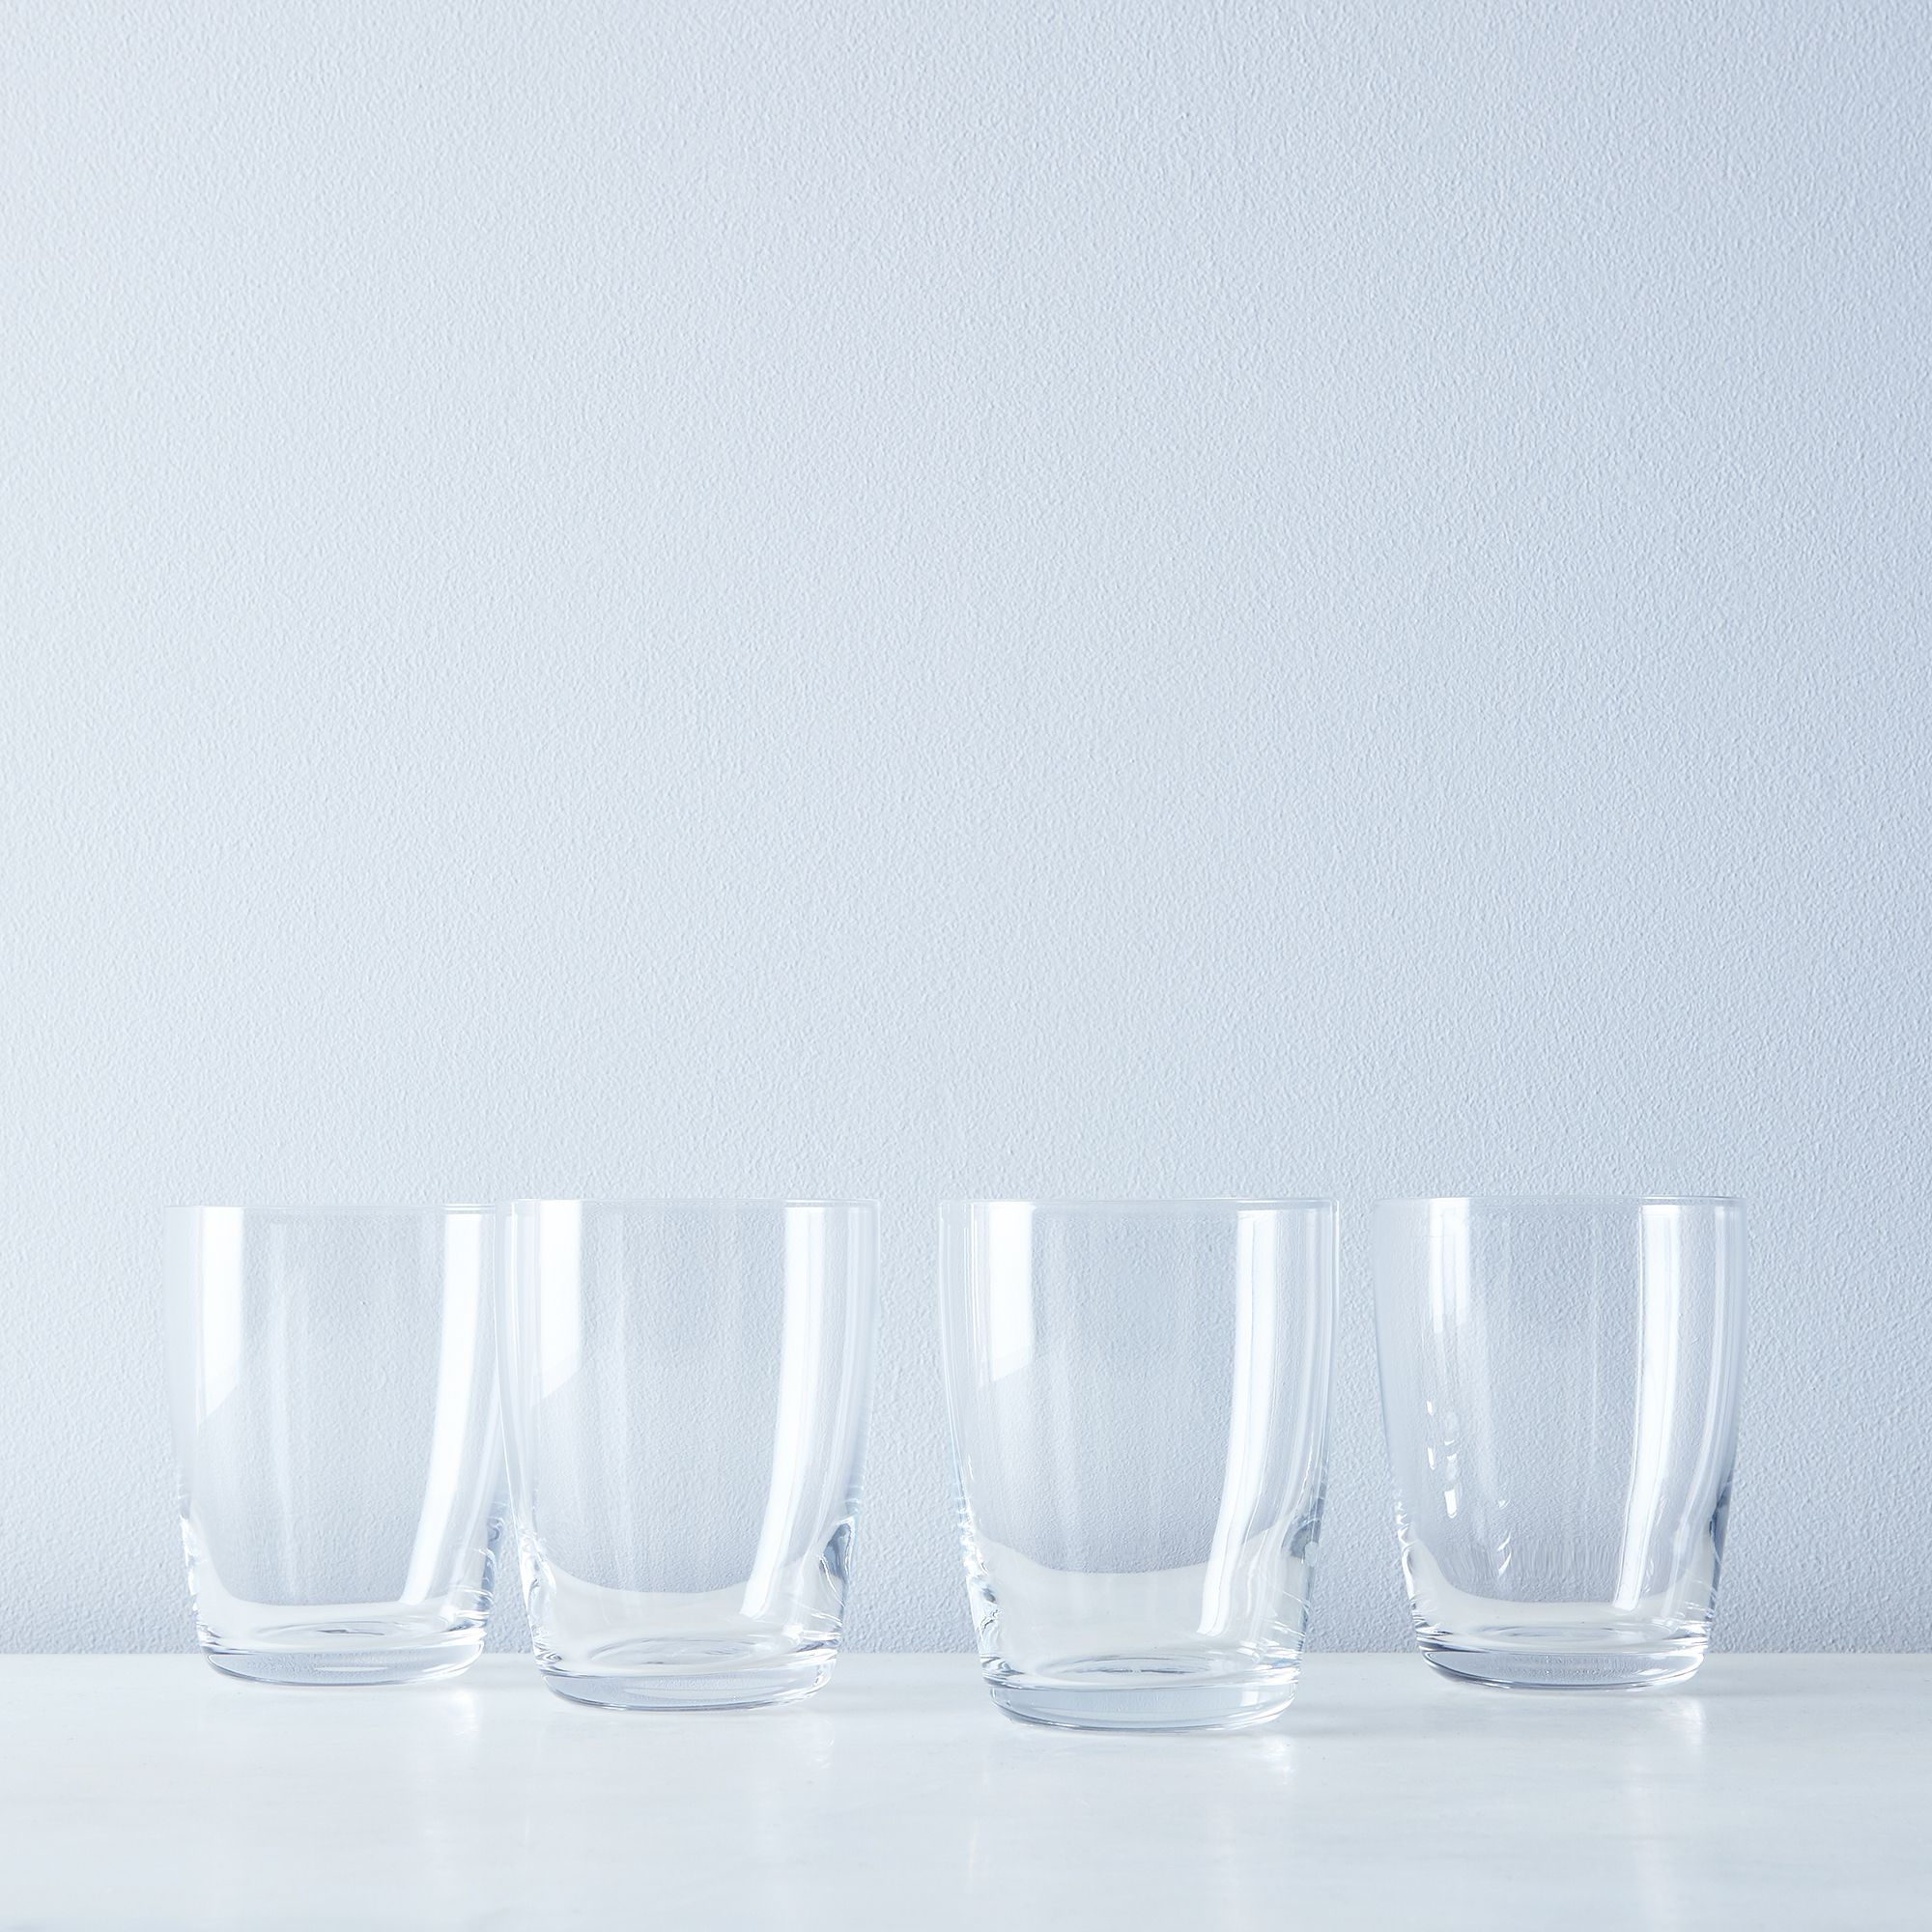 Fa22900a a8ba 4b11 b2cb f675a453403f  2017 0922 snowe home essential glasses set of 4 silo rocky luten 004